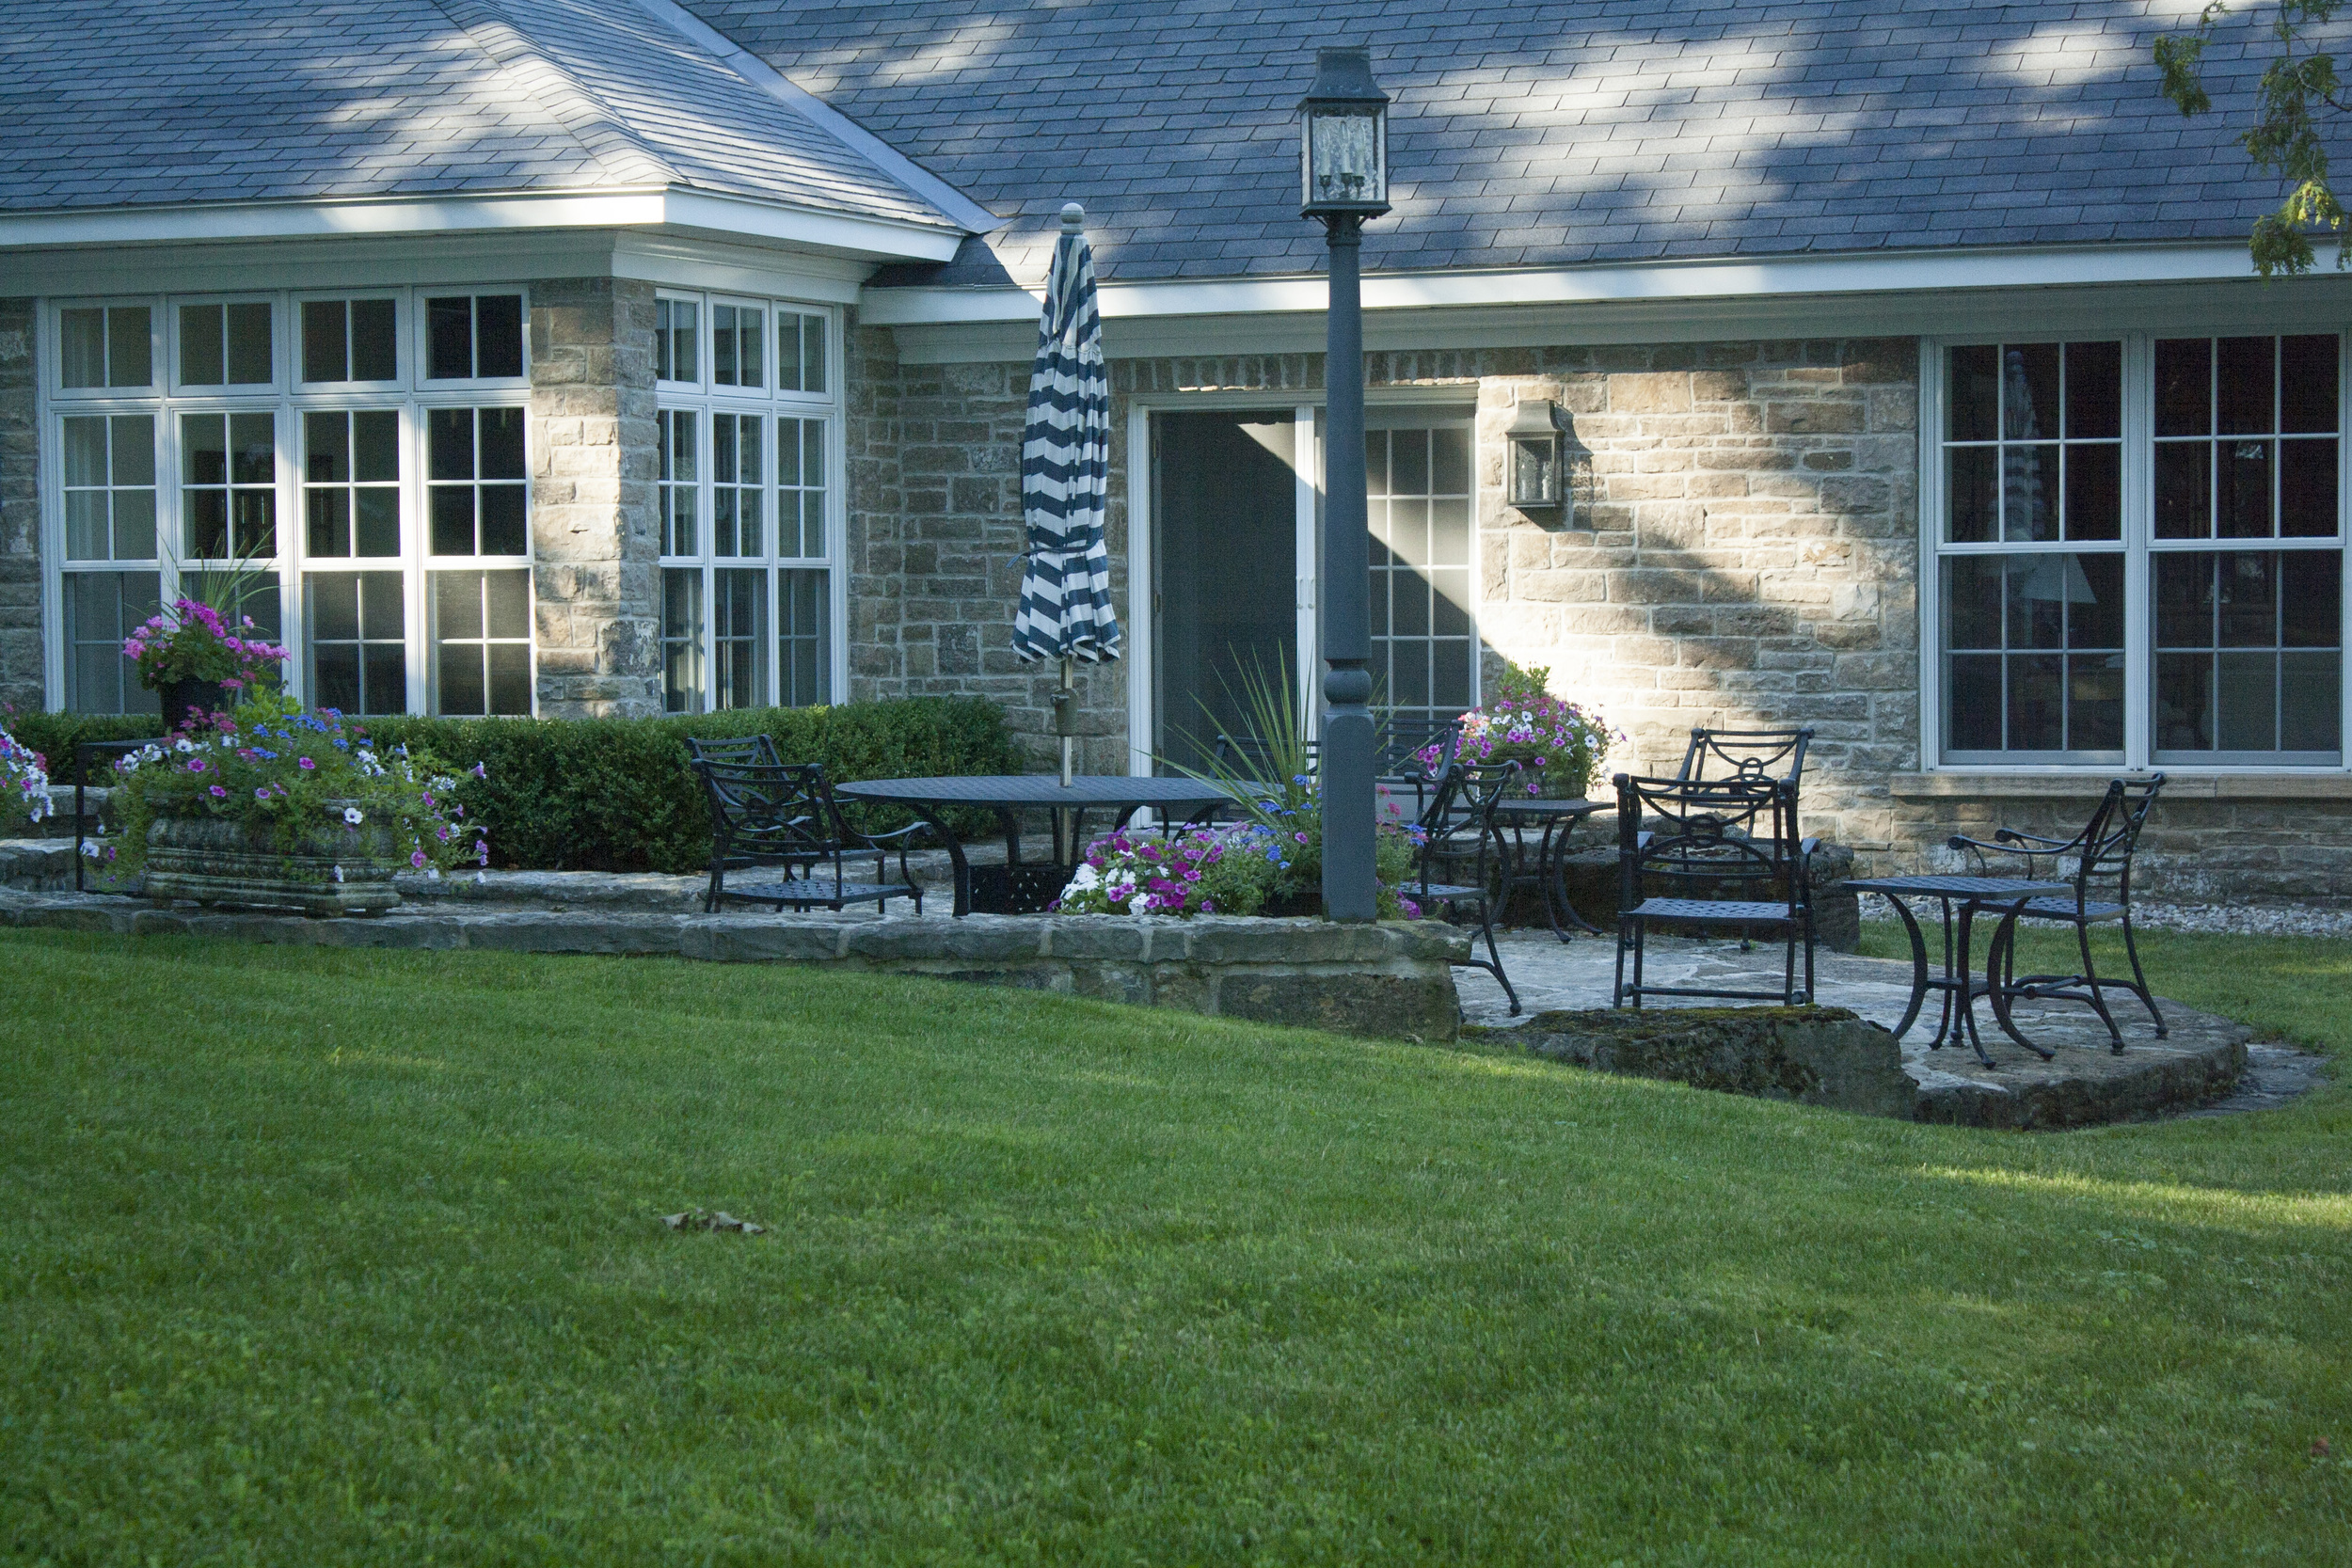 New Home With A Heritage Feel   Landscape Architecture   Riverview Design Solutions   Prescott, Ontario, Canada